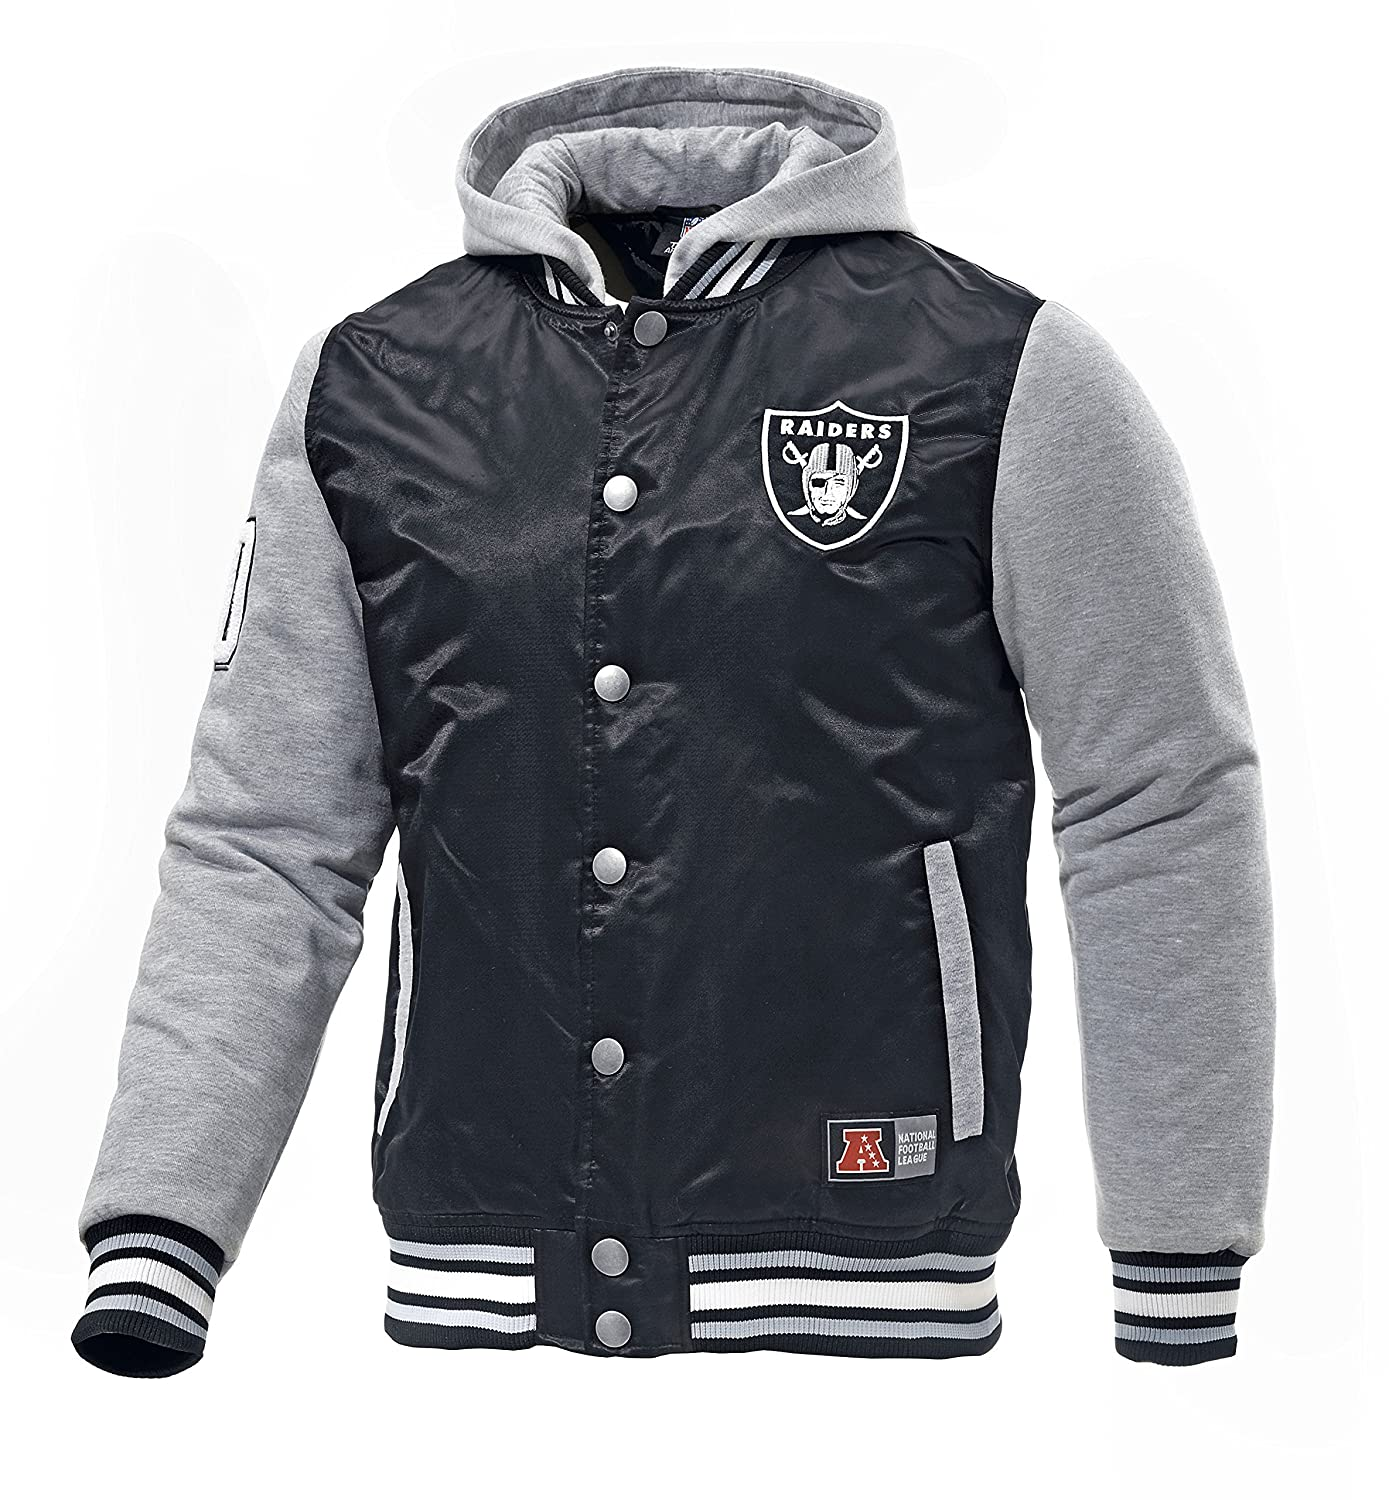 san francisco 90f7f 7f105 Official Majestic Besson 'Oakland Raiders' NFL Varsity ...